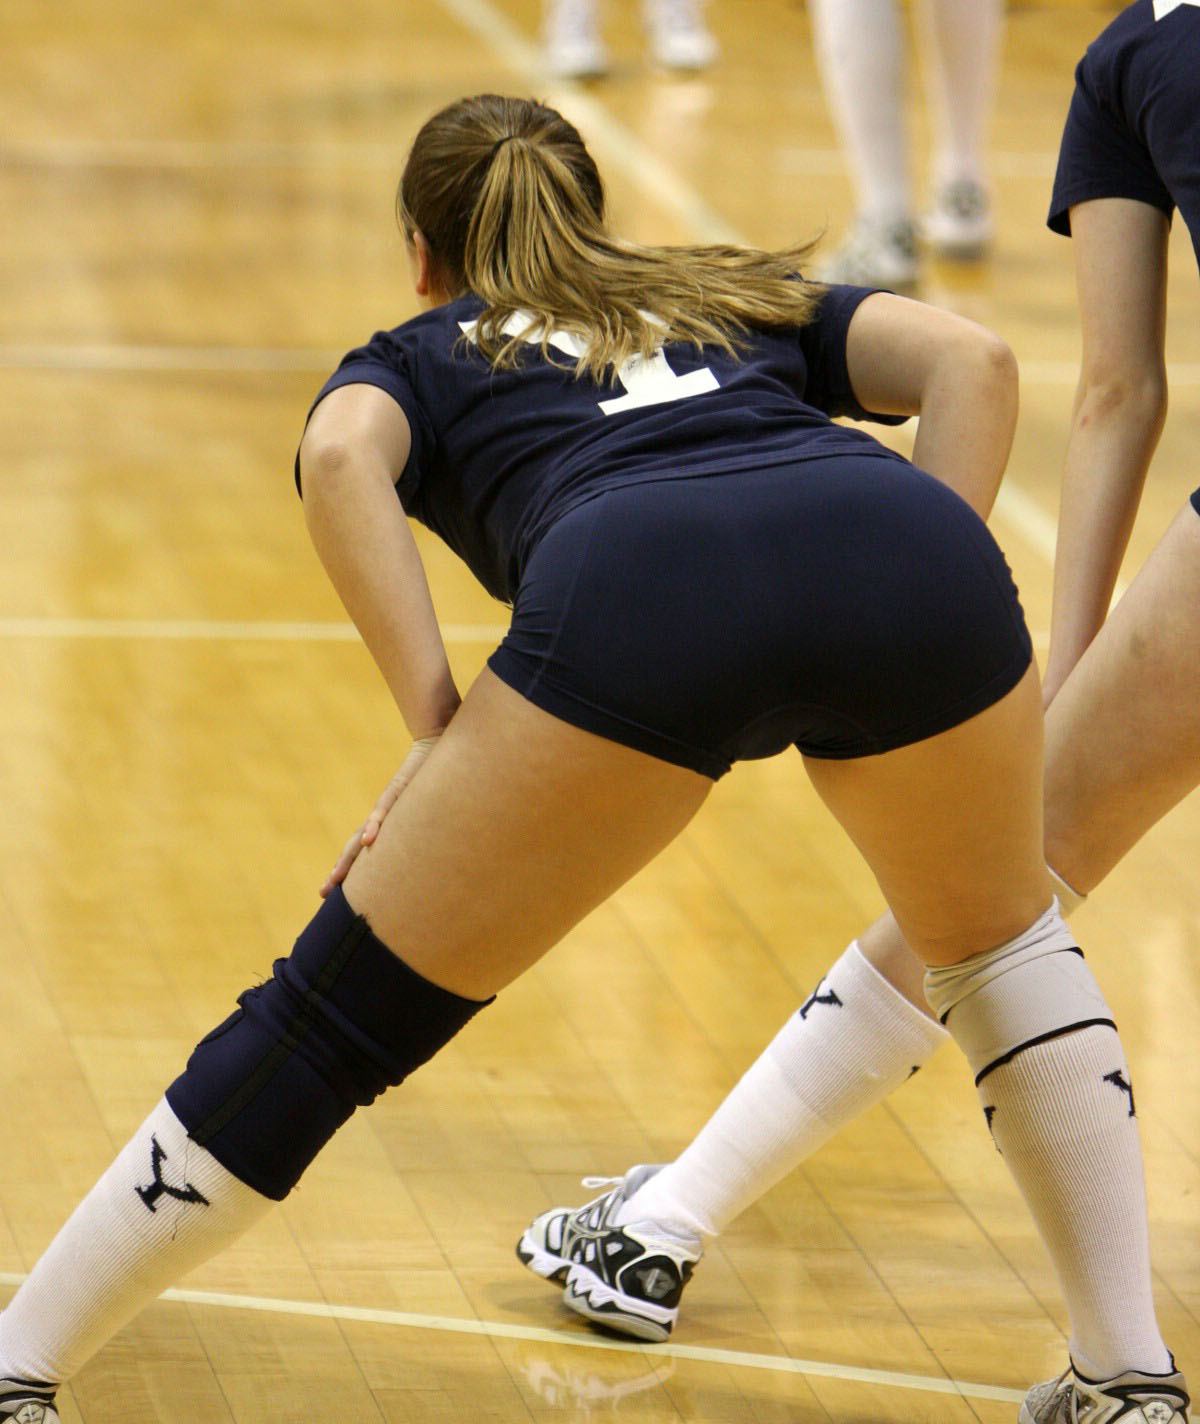 big-booty-college-volleyball-players